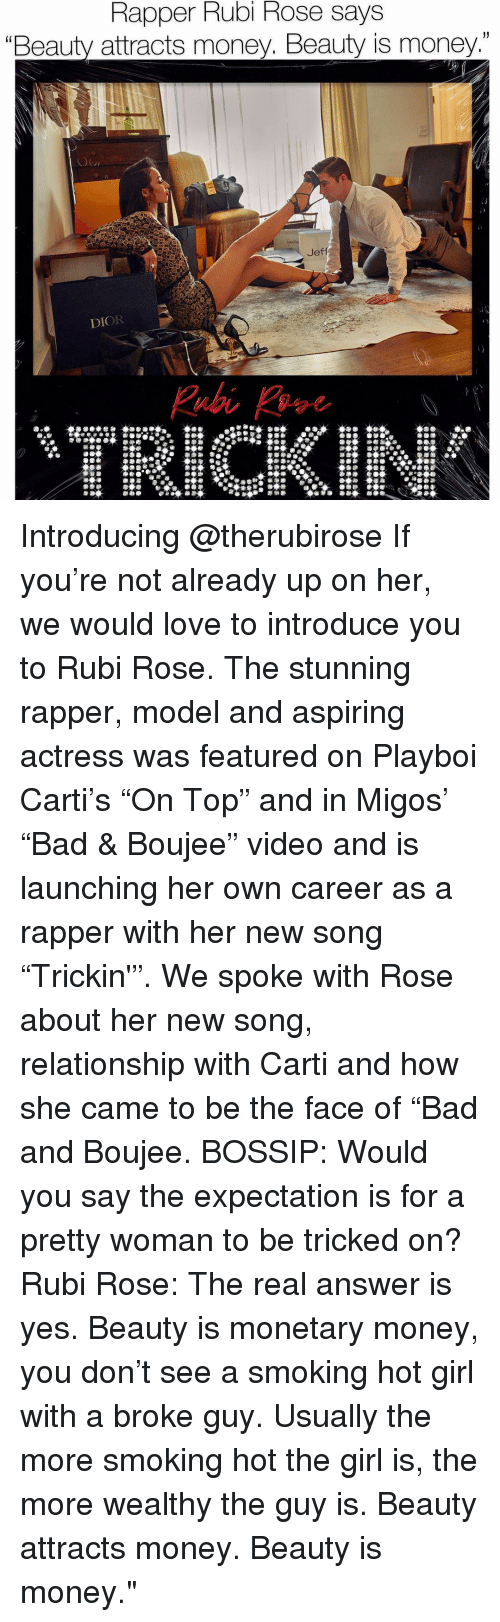 """Bossip: Rapper Rubi Rose says  """"Beauty attracts money. Beauty is money.""""  DIOR Introducing @therubirose If you're not already up on her, we would love to introduce you to Rubi Rose. The stunning rapper, model and aspiring actress was featured on Playboi Carti's """"On Top"""" and in Migos' """"Bad & Boujee"""" video and is launching her own career as a rapper with her new song """"Trickin'"""". We spoke with Rose about her new song, relationship with Carti and how she came to be the face of """"Bad and Boujee. BOSSIP: Would you say the expectation is for a pretty woman to be tricked on? Rubi Rose: The real answer is yes. Beauty is monetary money, you don't see a smoking hot girl with a broke guy. Usually the more smoking hot the girl is, the more wealthy the guy is. Beauty attracts money. Beauty is money."""""""